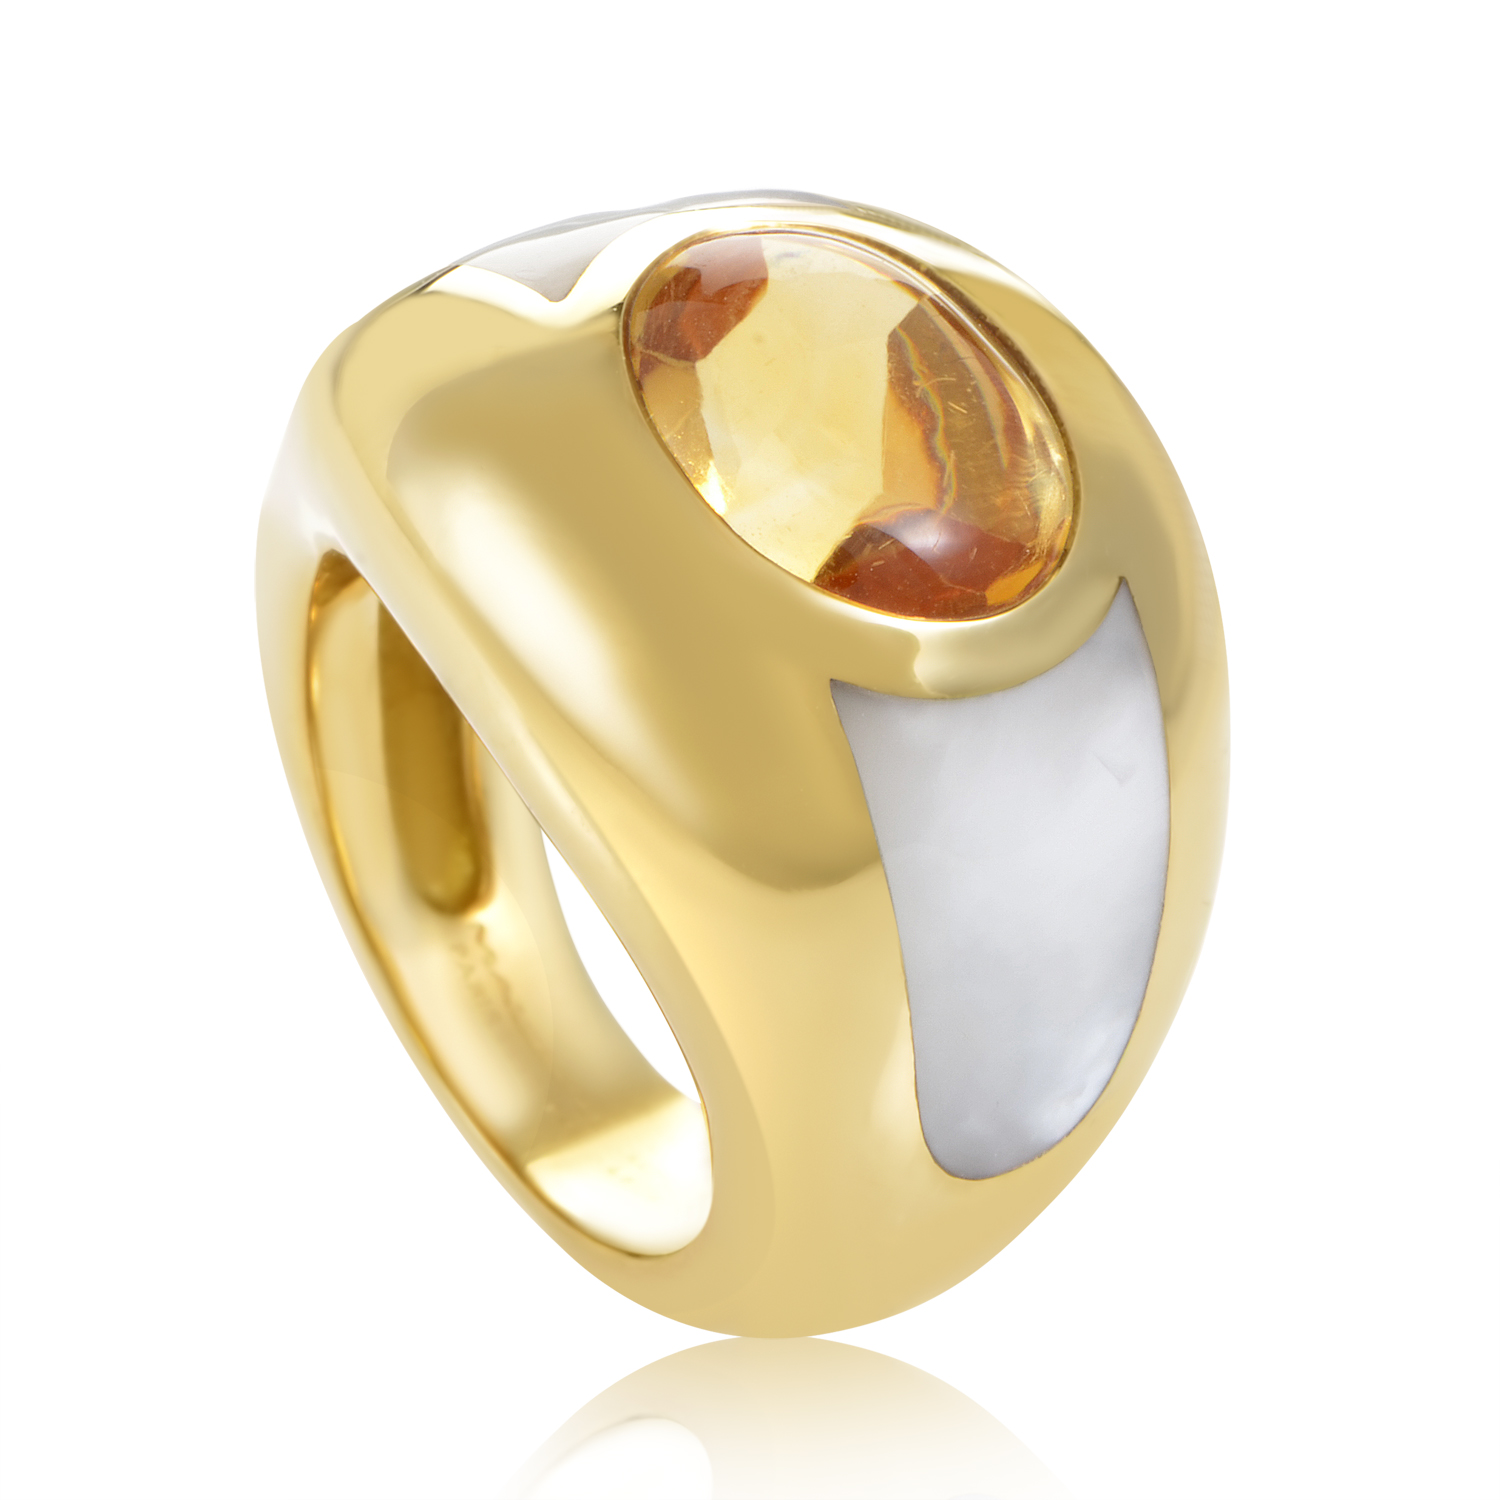 Mauboussin Women's 18K Yellow Gold Citrine & Mother of Pearl Ring